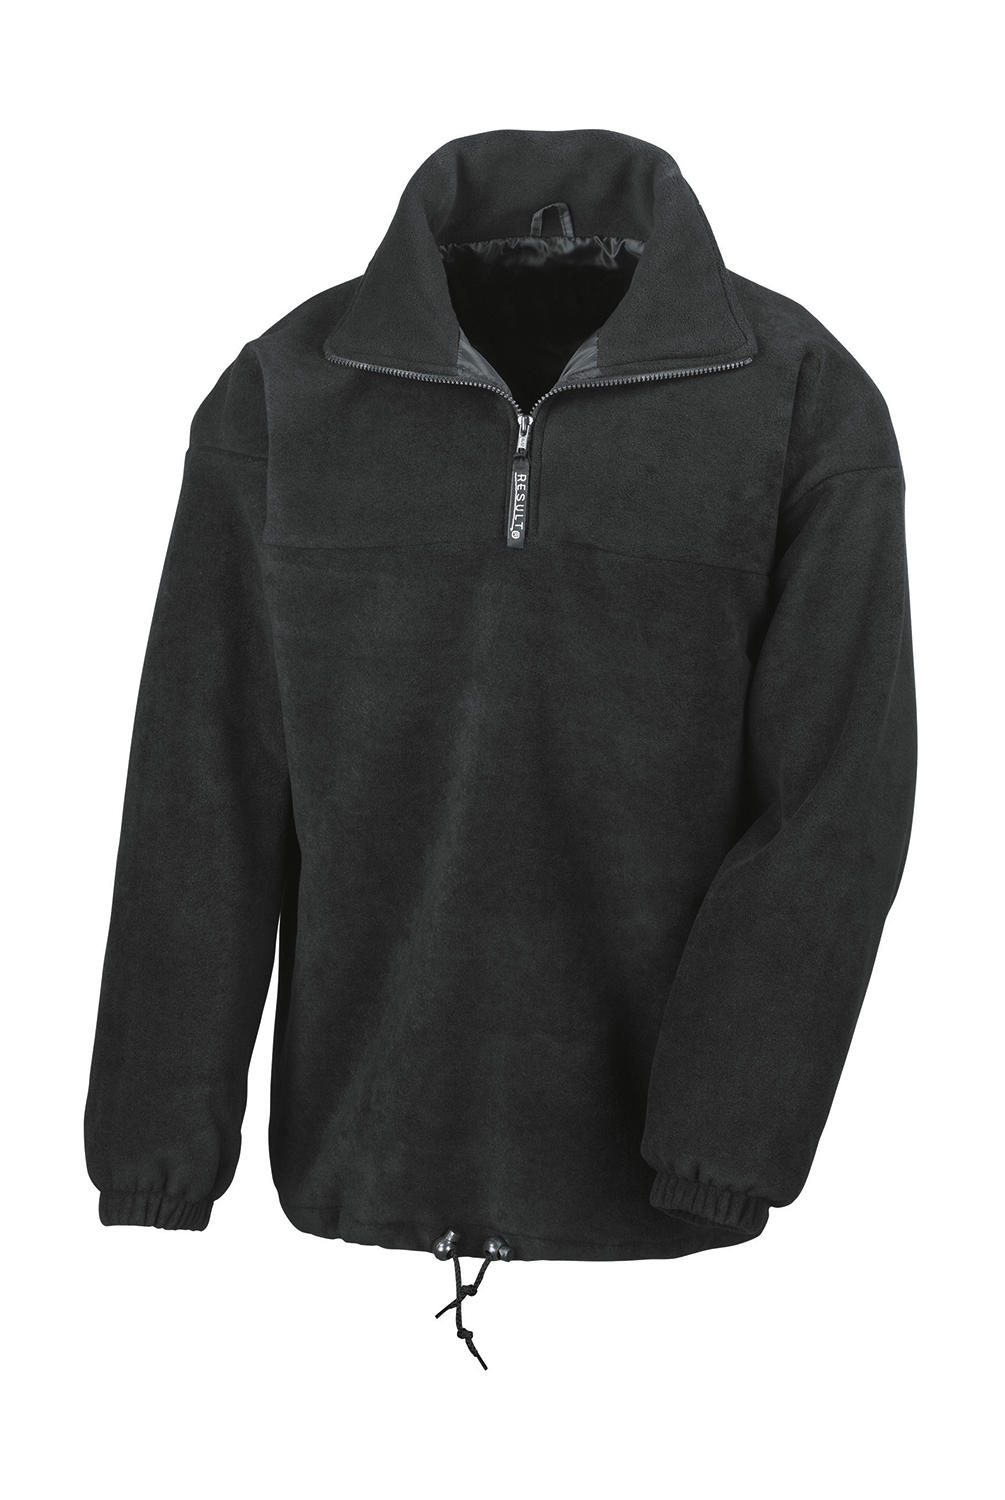 1/4 Zip Lined Fleece